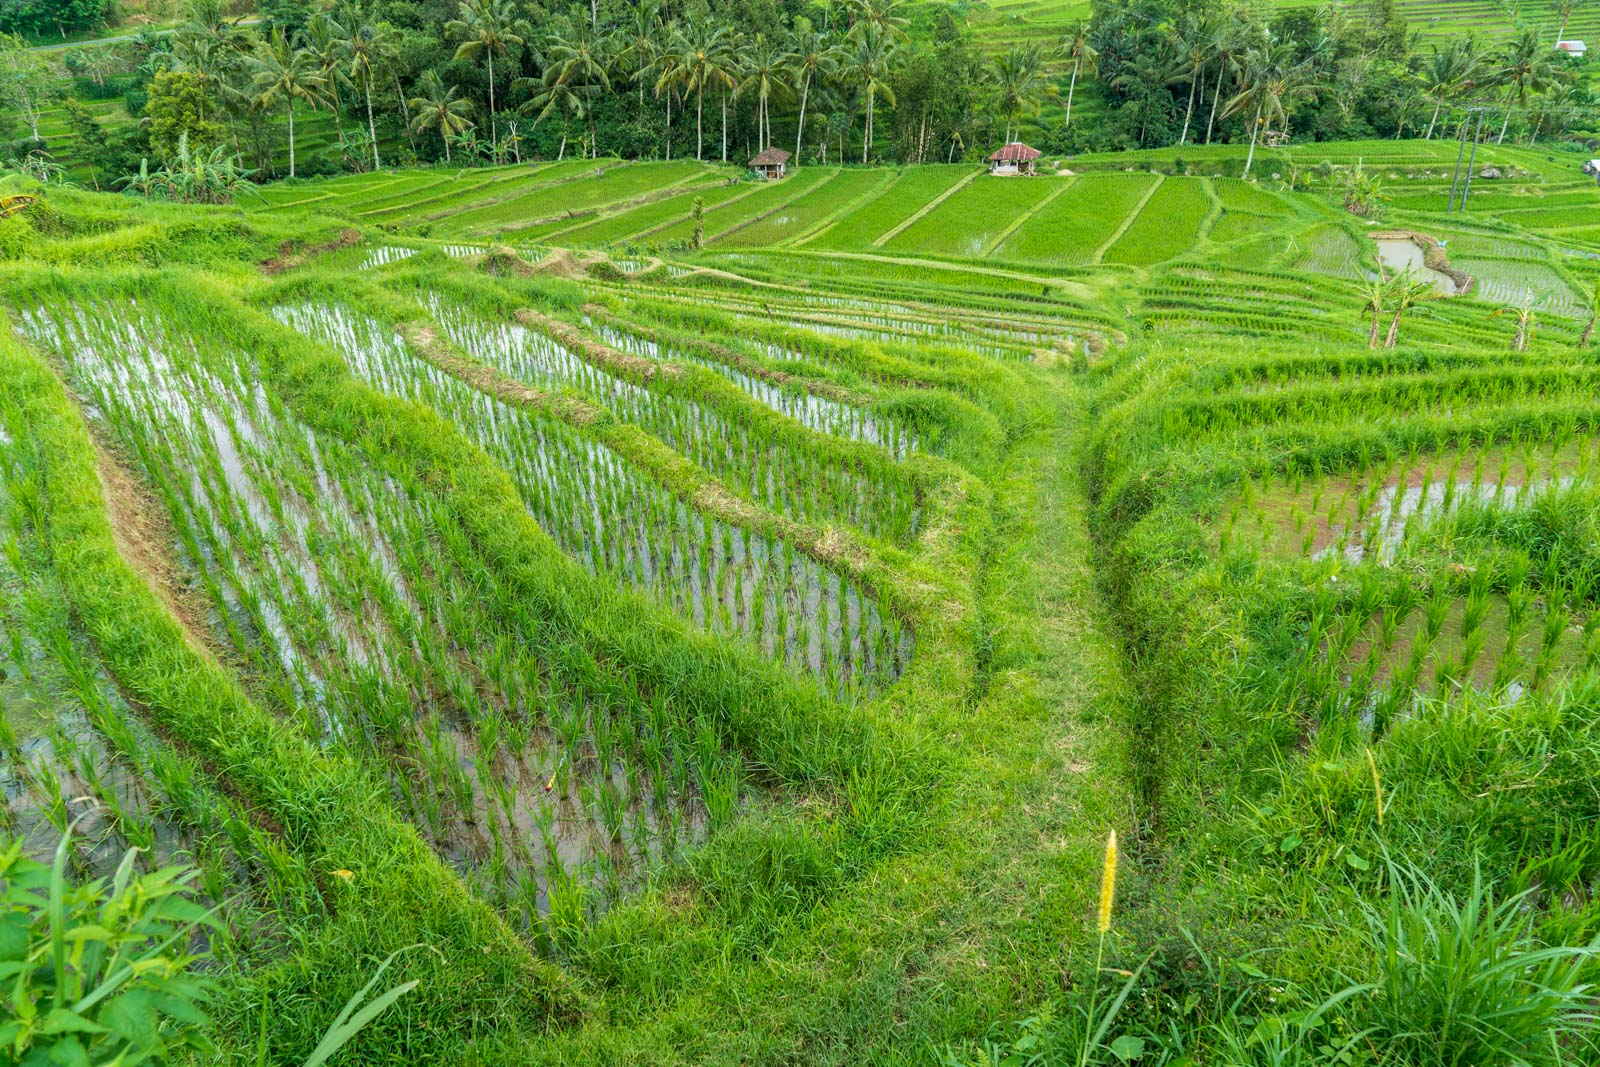 Visiting Jatiluwih Rice Terraces and Balis Cultural Landscape